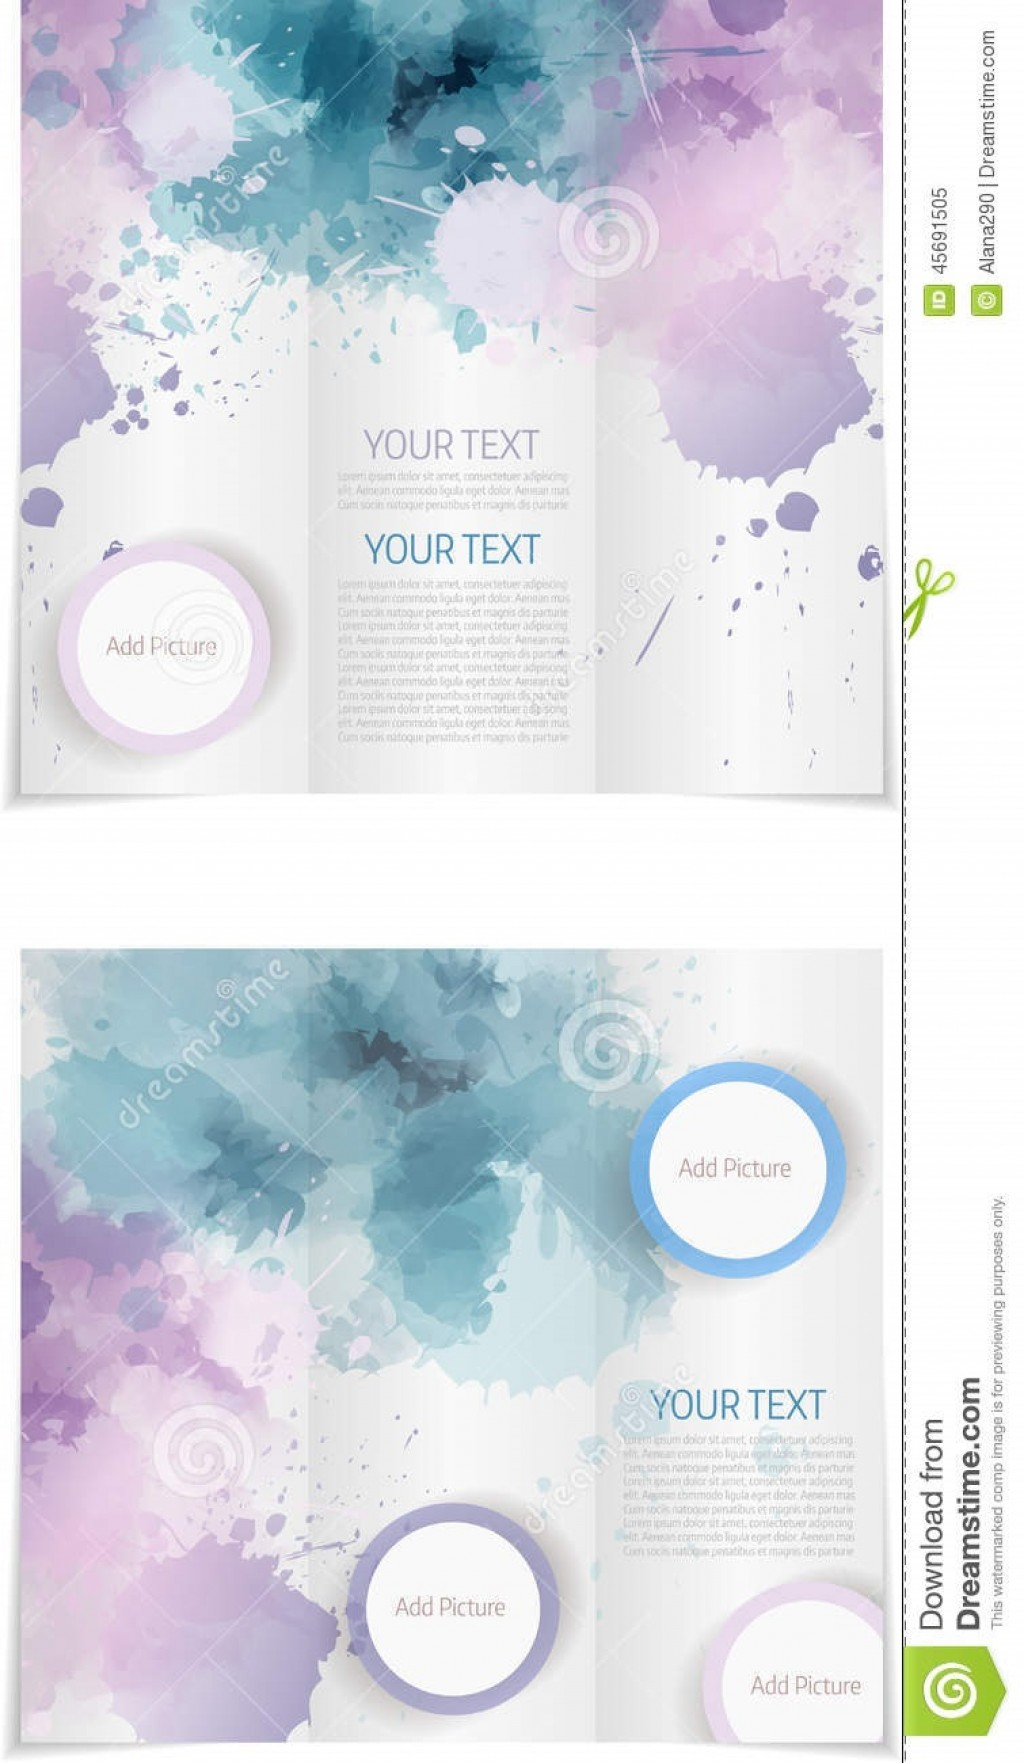 009 Stupendou Publisher Brochure Template Free Inspiration  Tri Fold Microsoft Download BiLarge